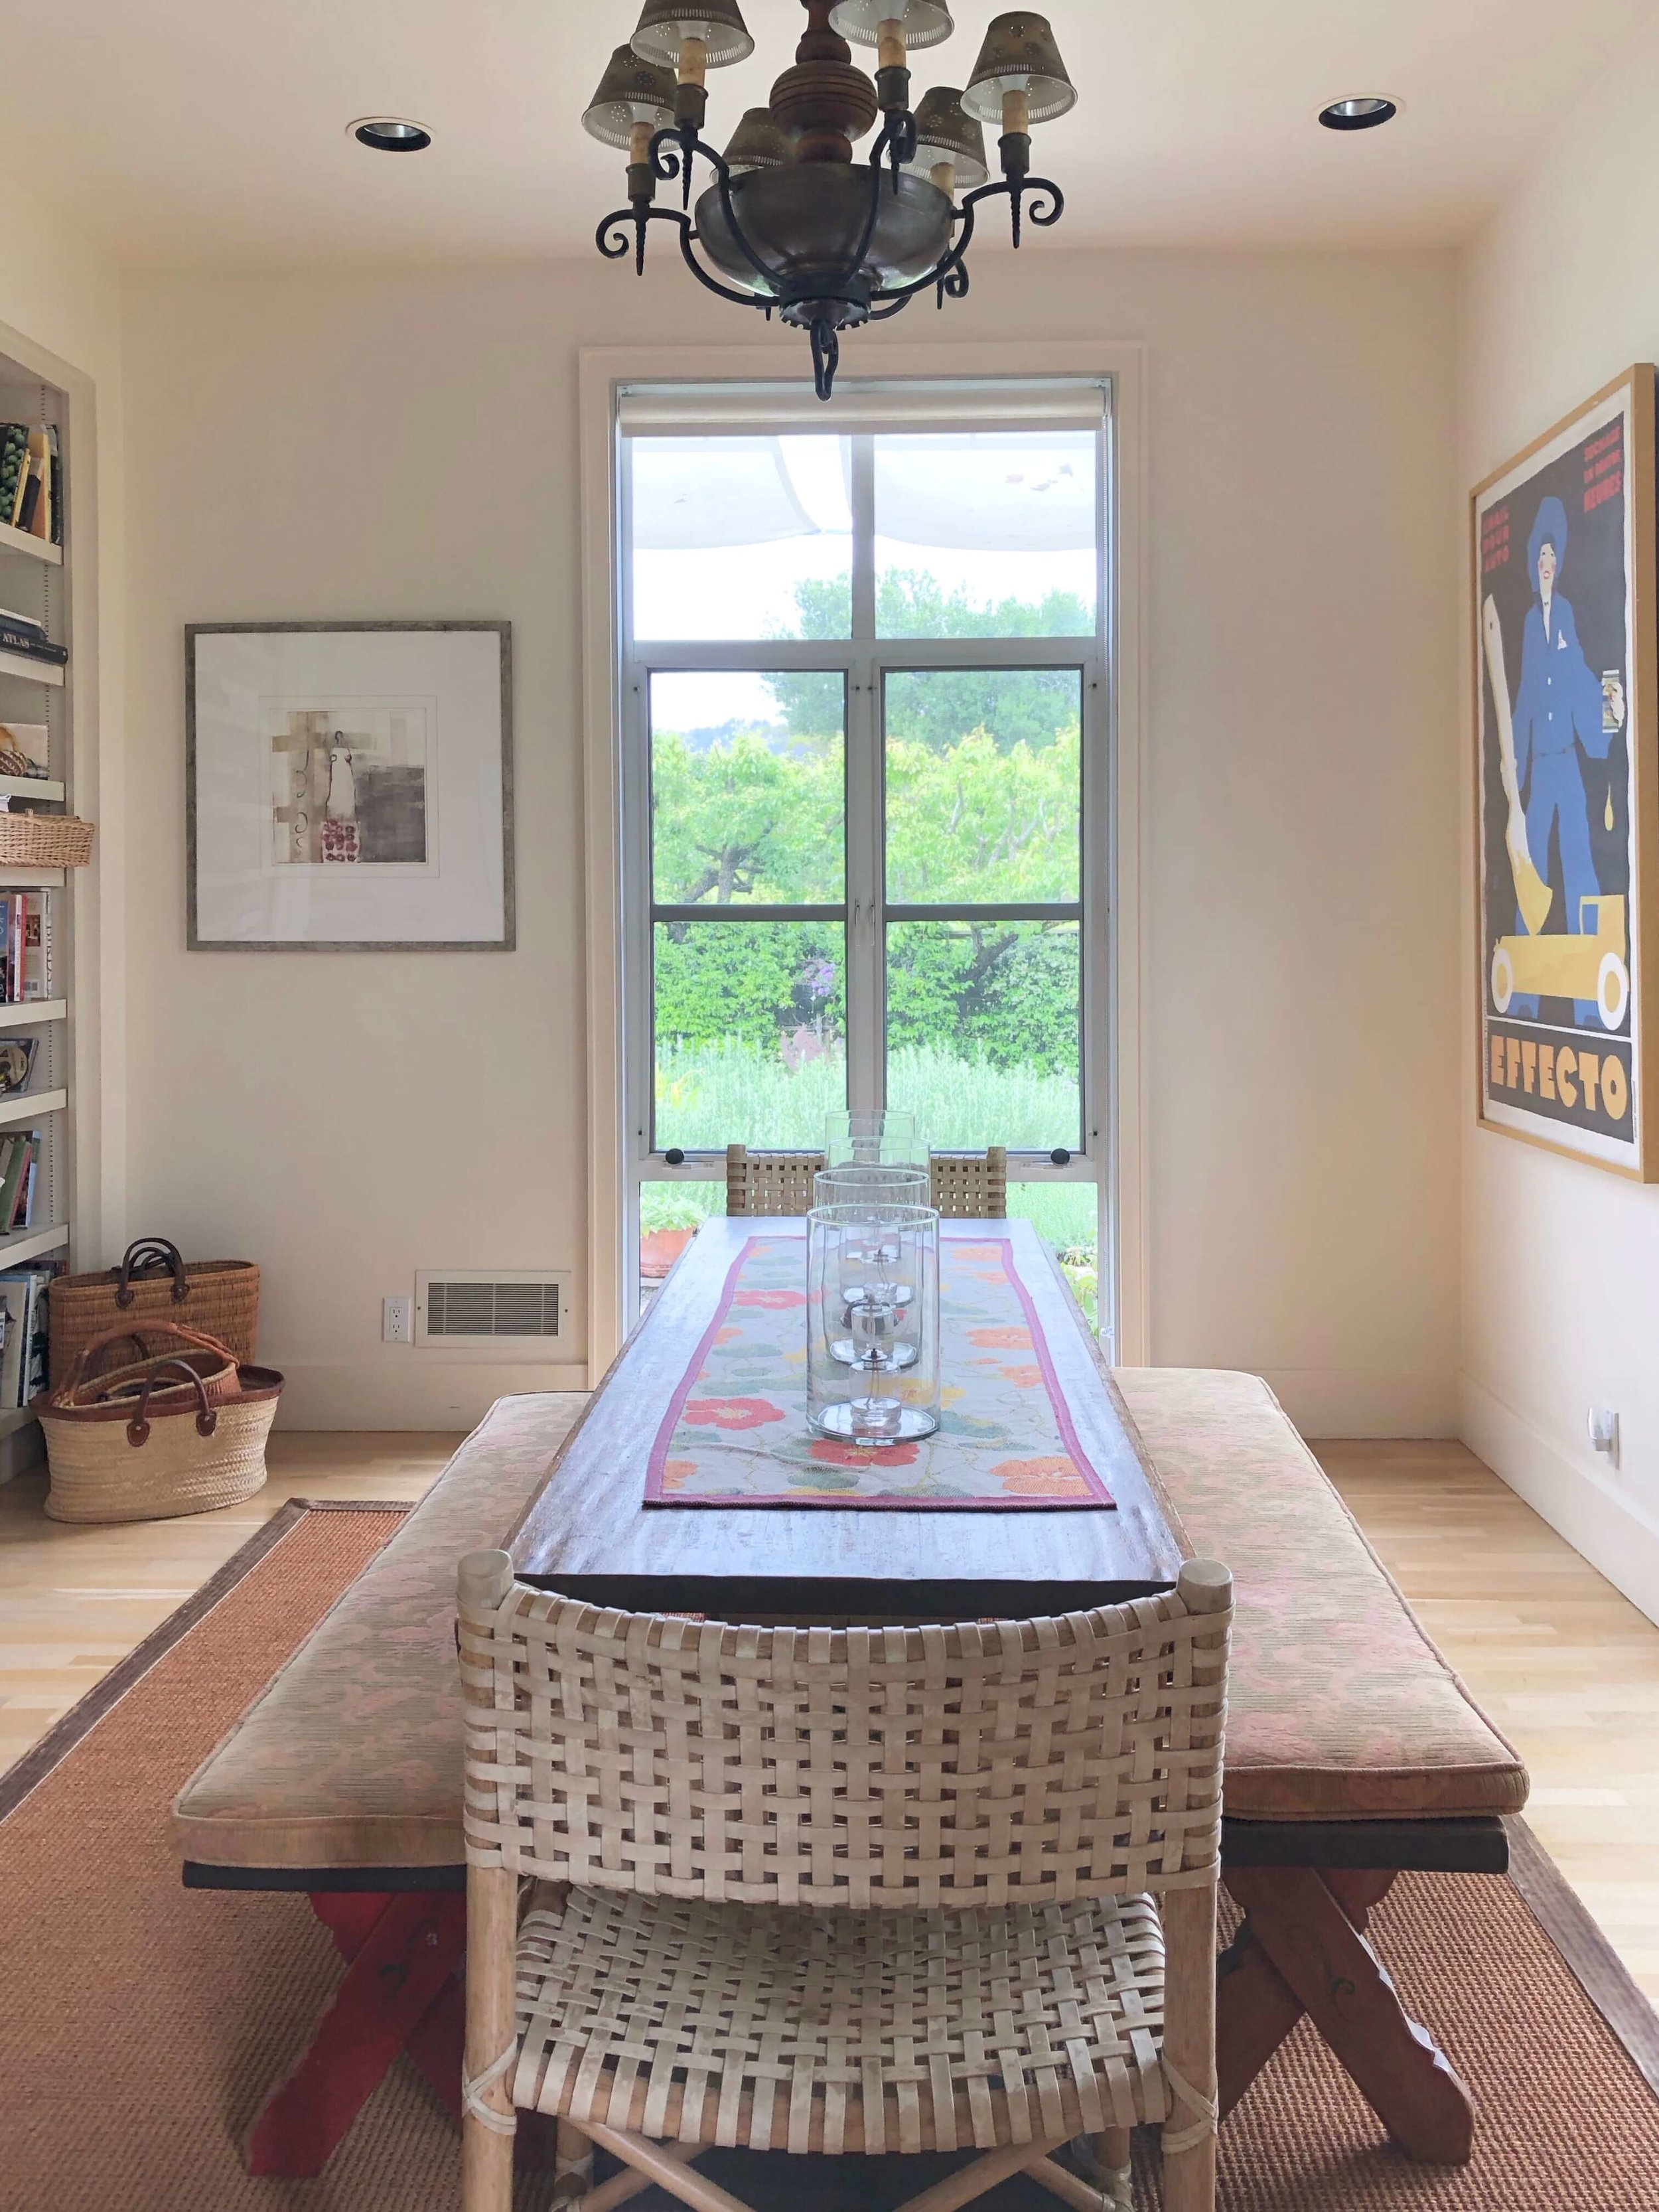 Vintage French posters create a European ambience in this Sonoma Valley Airbnb vacation rental dining room. #airbnb #winecountry #farmhousekitchen